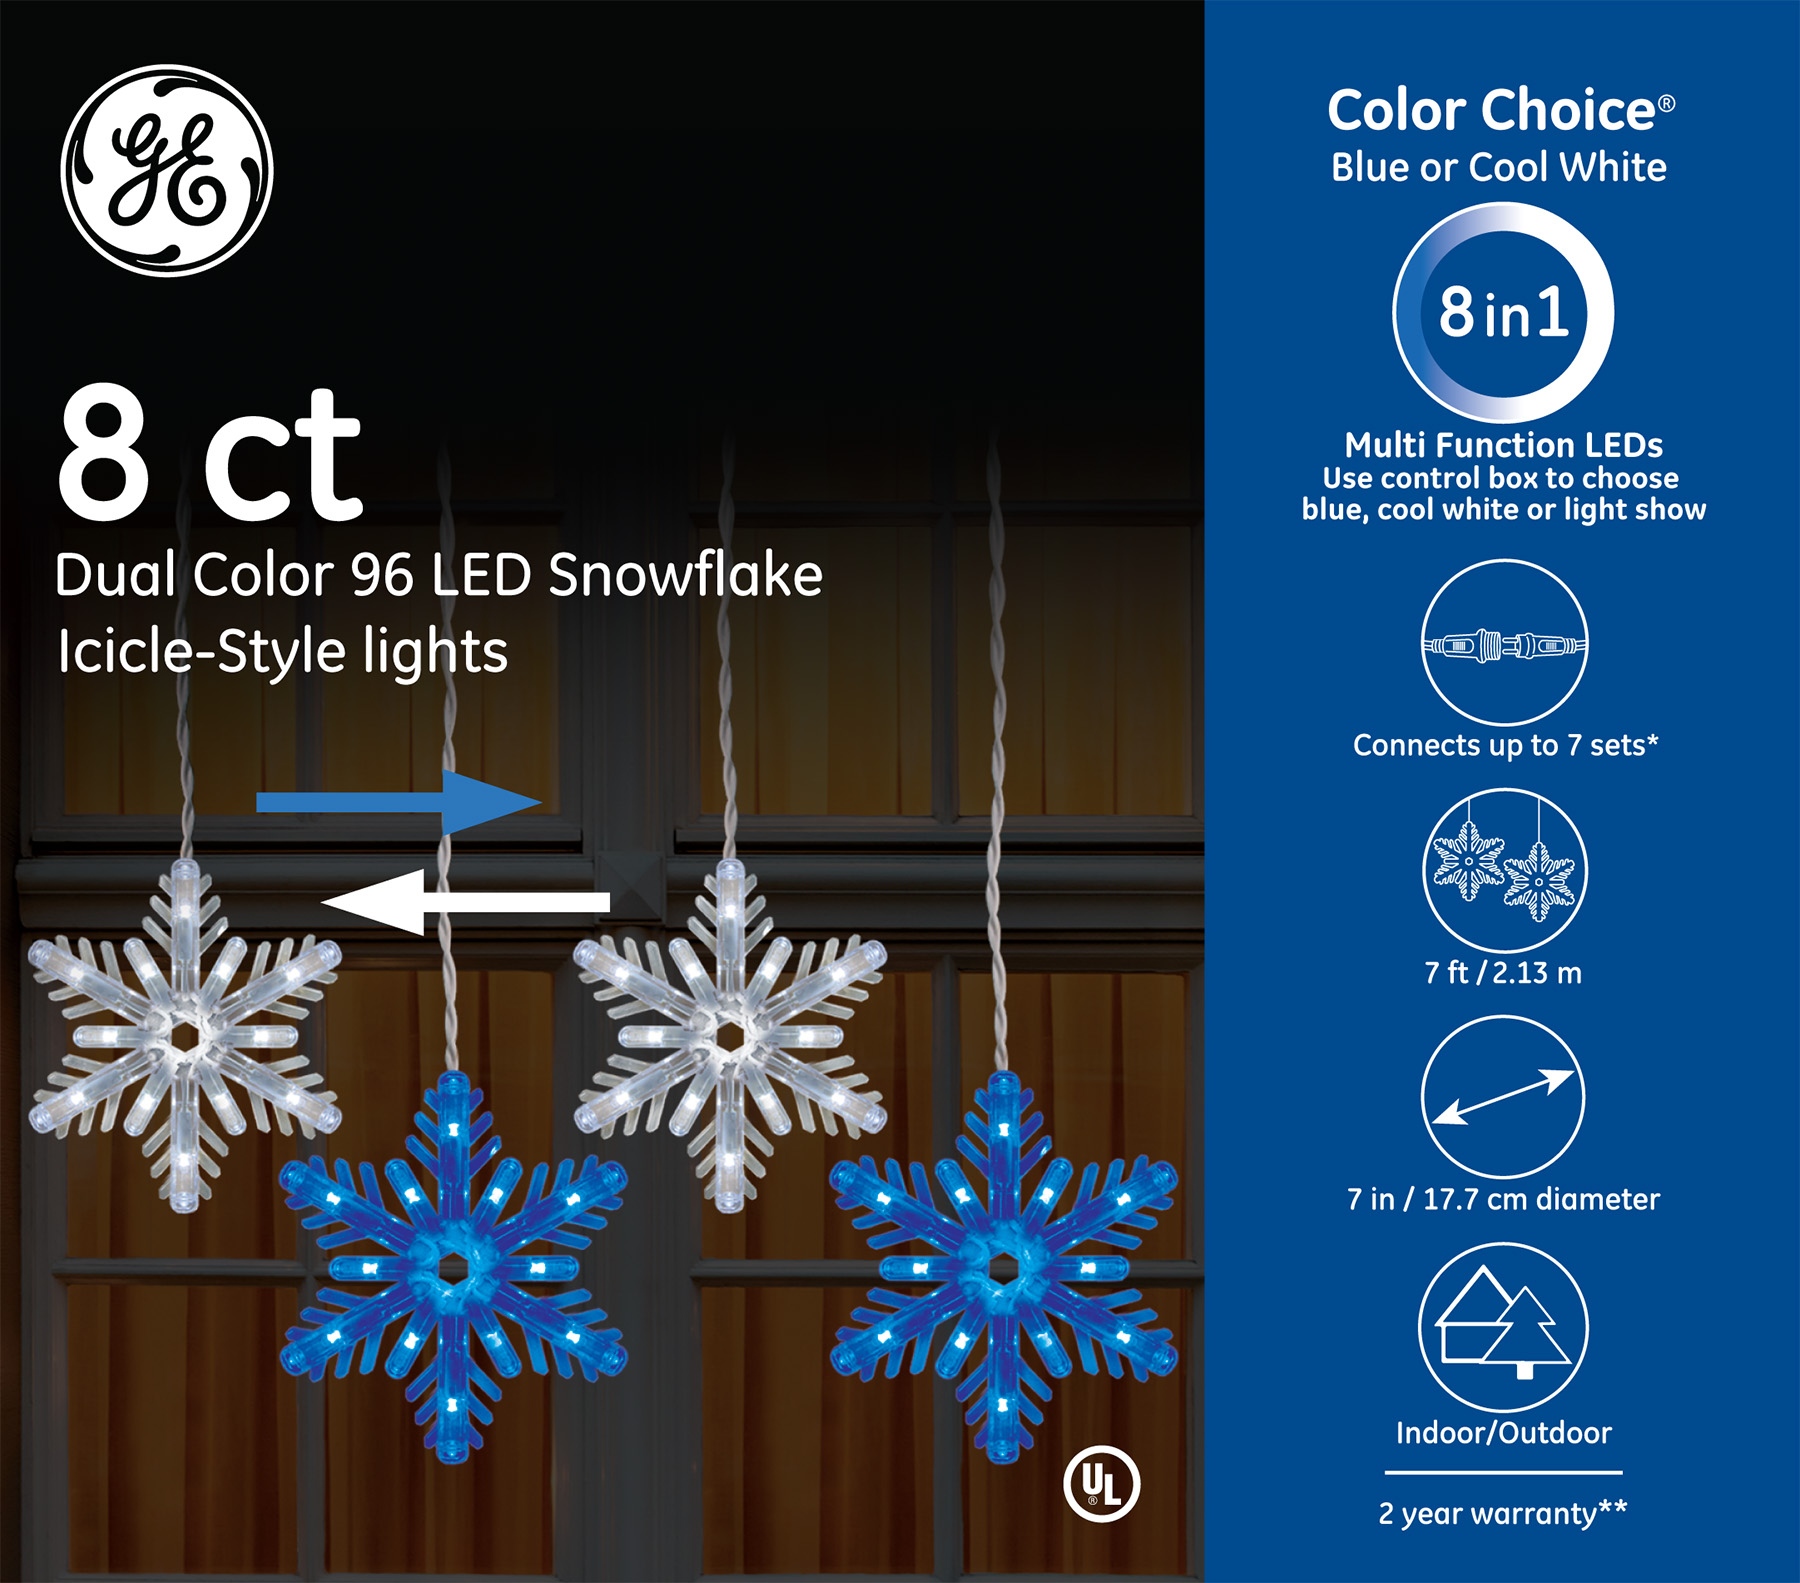 89150 Ge Color Choice 174 Led Snowflake Icicle Style Lights